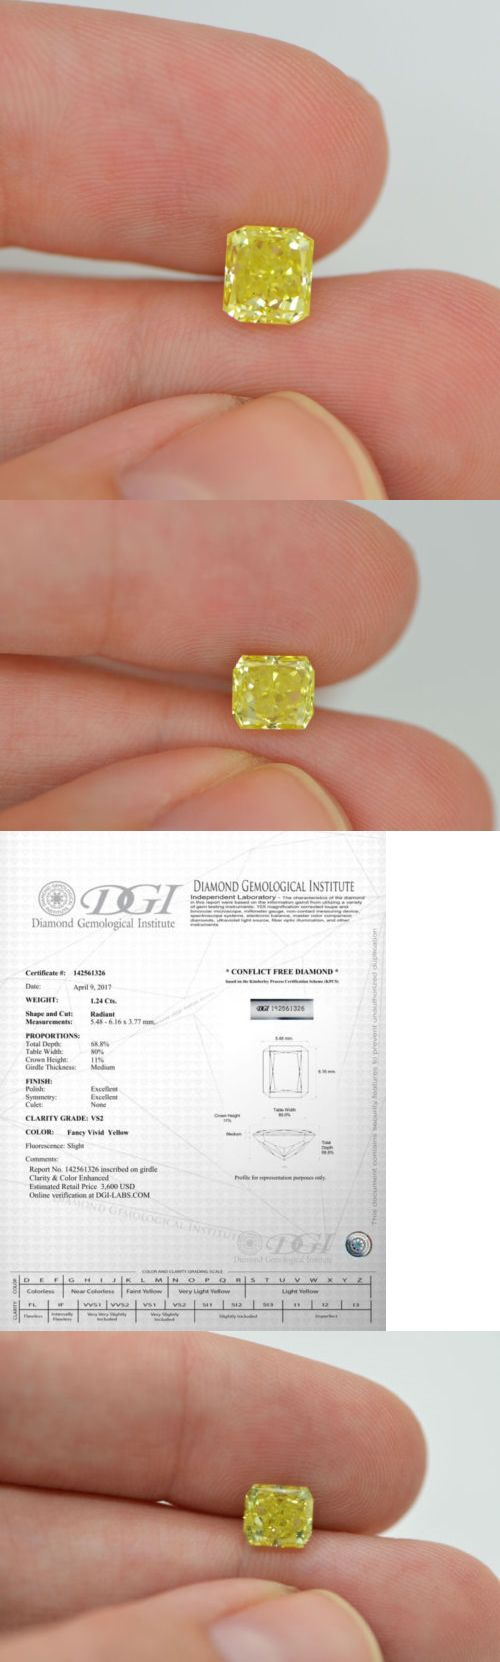 Enhanced Natural Diamonds 152810: 1.24 Carat Radiant Cut Yellow Enhanced Diamond Vs2 Certified For Engagement Ring -> BUY IT NOW ONLY: $1875 on eBay!